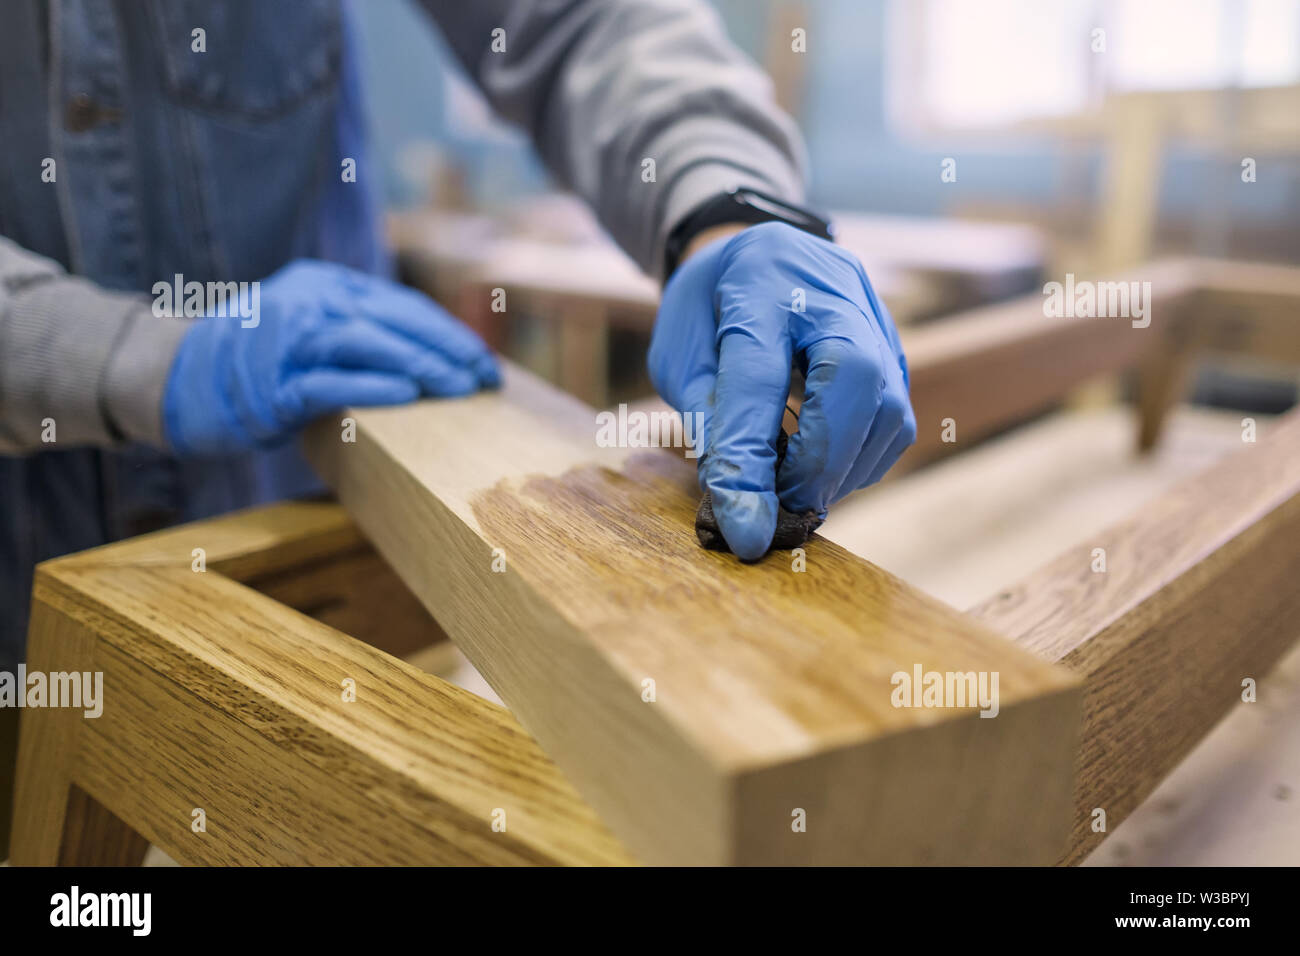 male hand paint wooden surface with brown paint - Stock Image